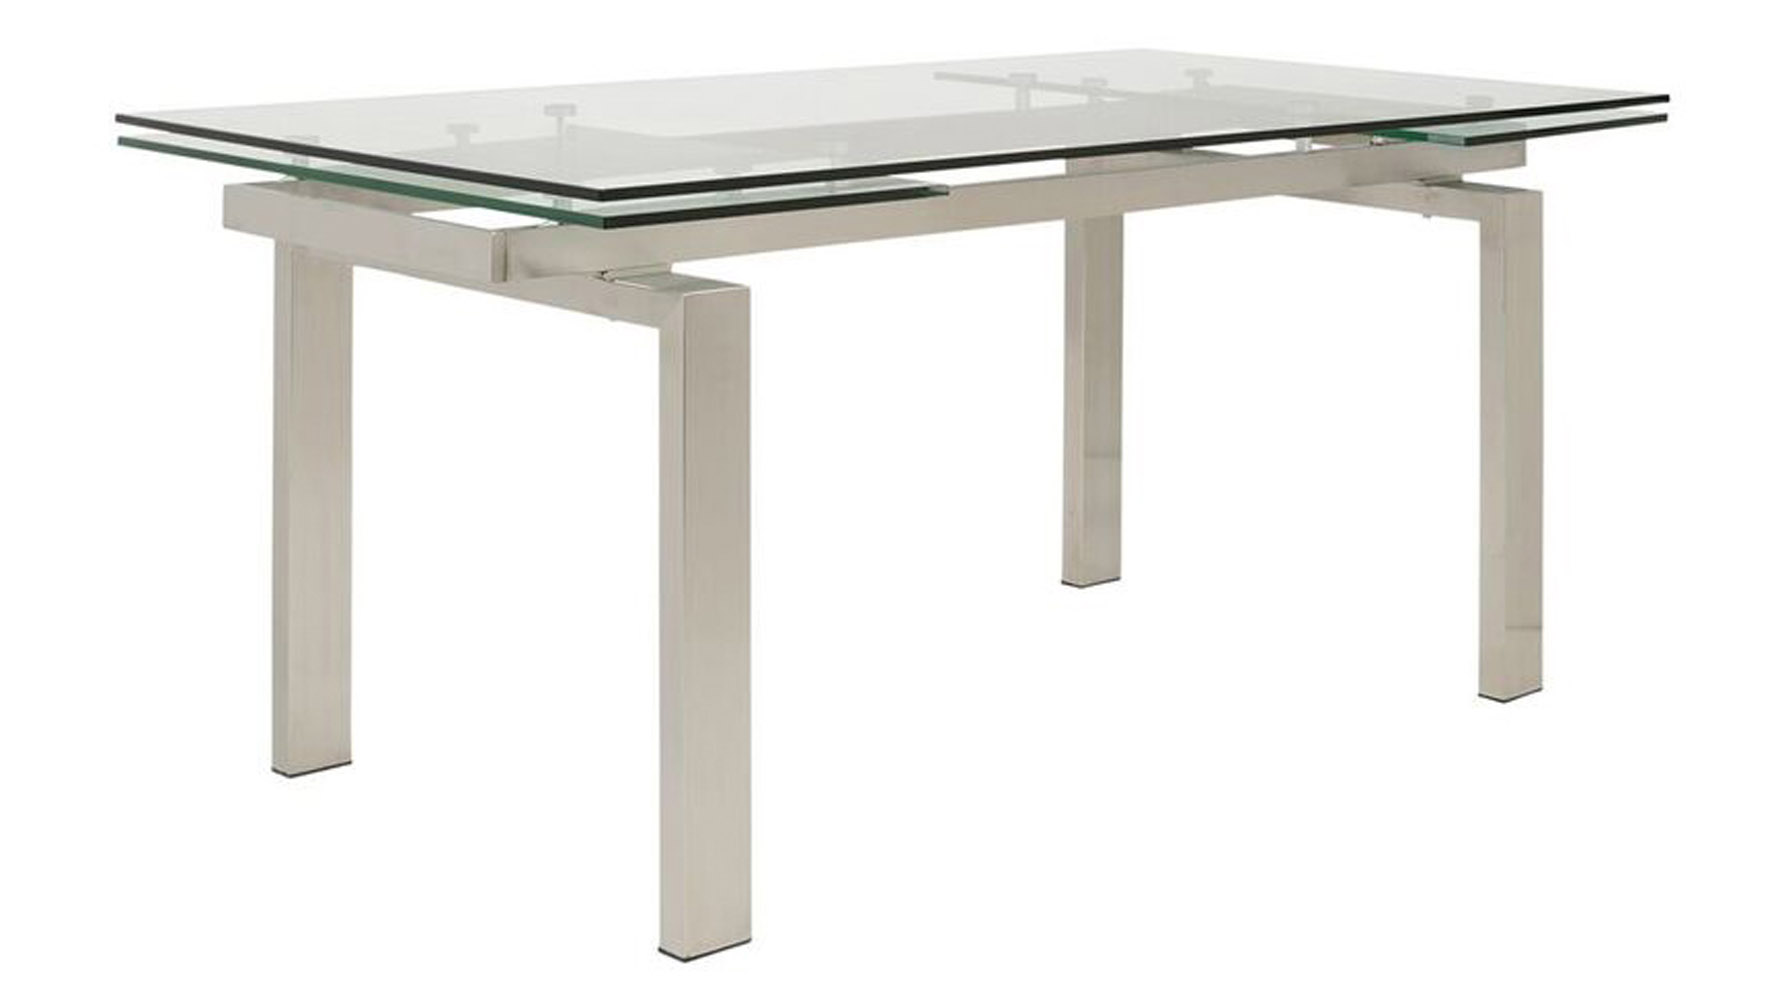 Extension Table Luciana 94 Inch Glass And Stainless Steel Extension Table